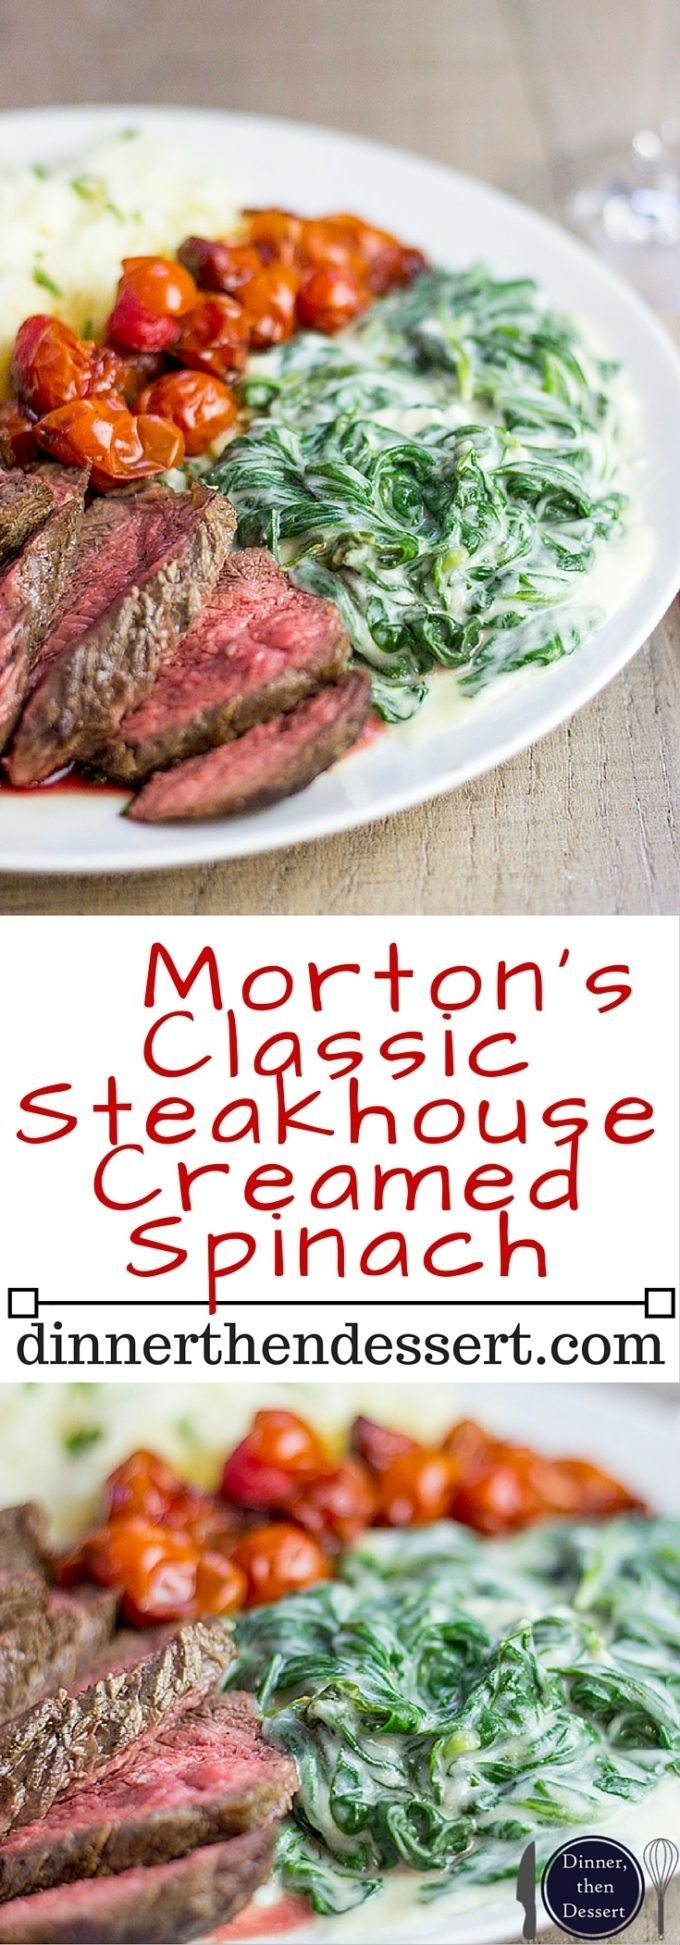 10 Spectacular Prime Rib Side Dishes Ideas the best creamed spinach recipe dinner then dessert 2020